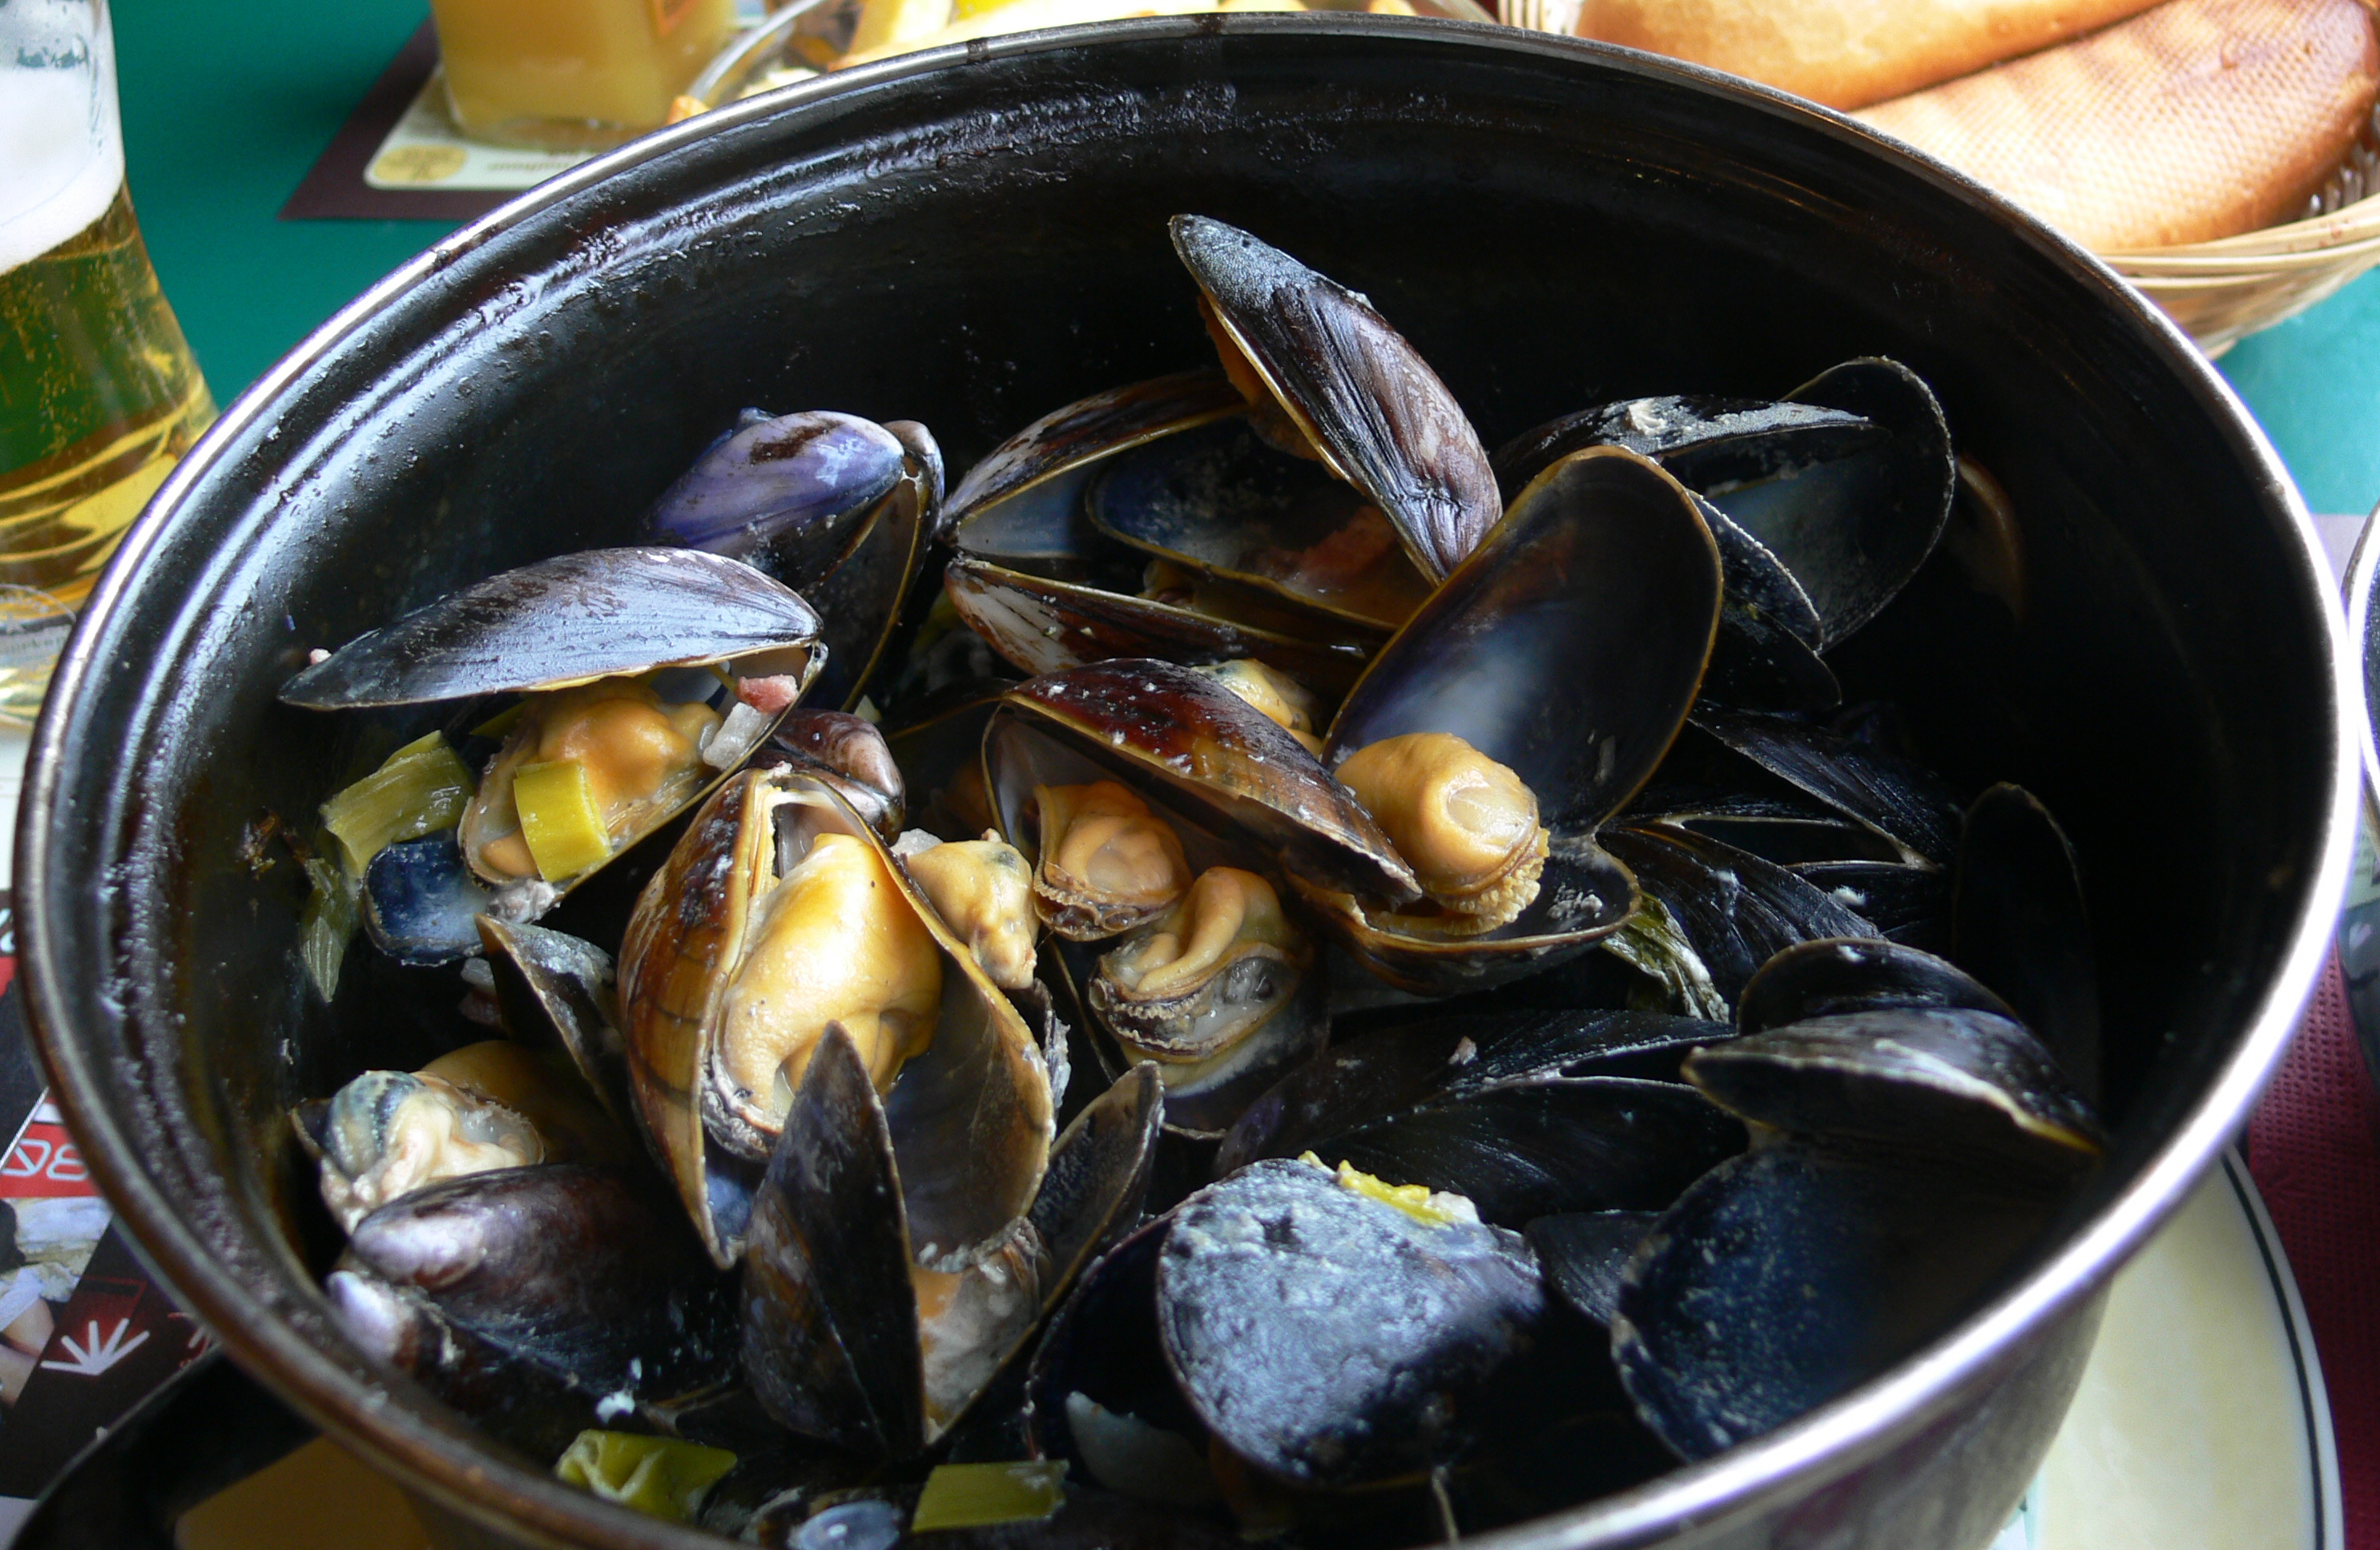 http://upload.wikimedia.org/wikipedia/commons/4/4c/Moules_as_served_in_France.jpg